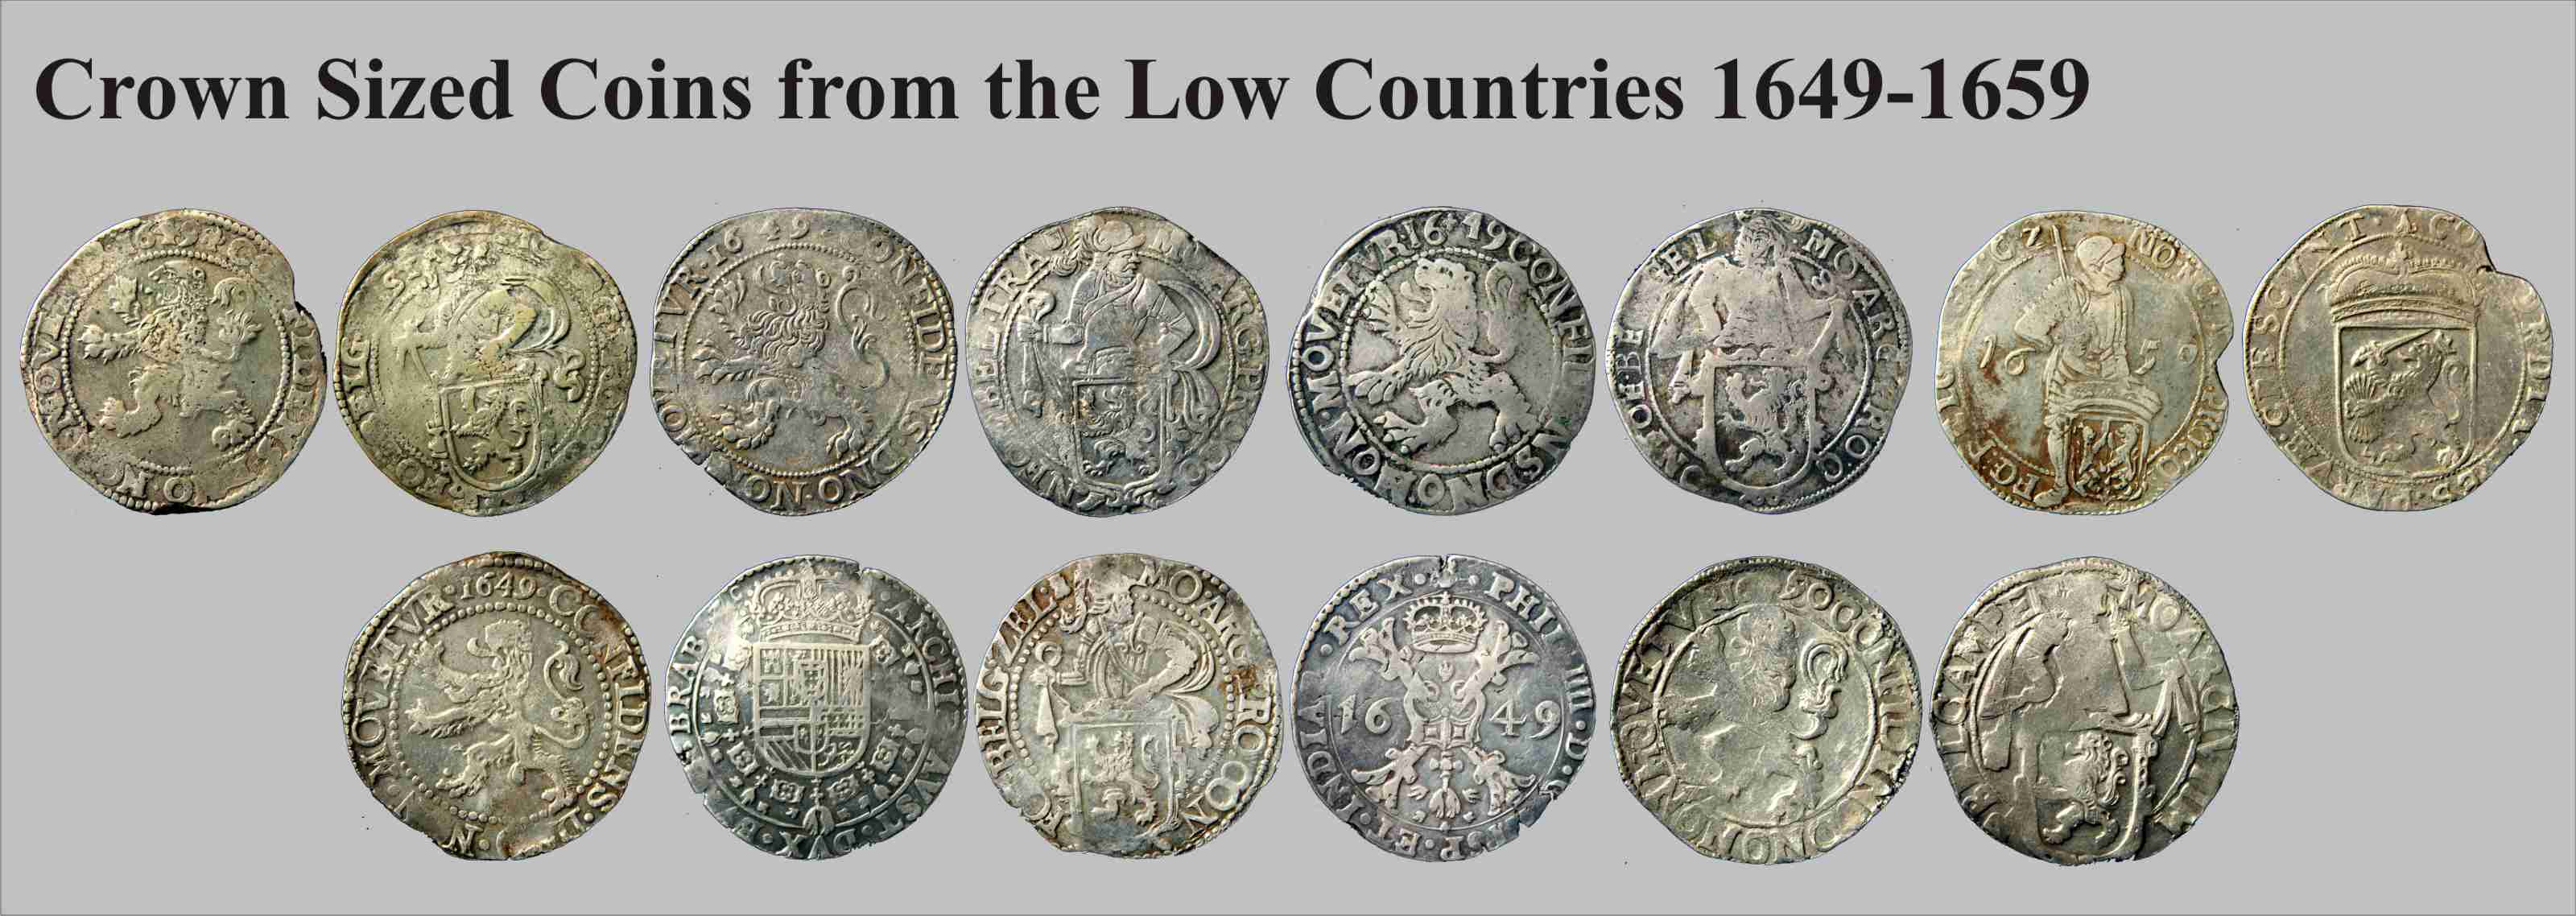 Low Countries Crown Sized